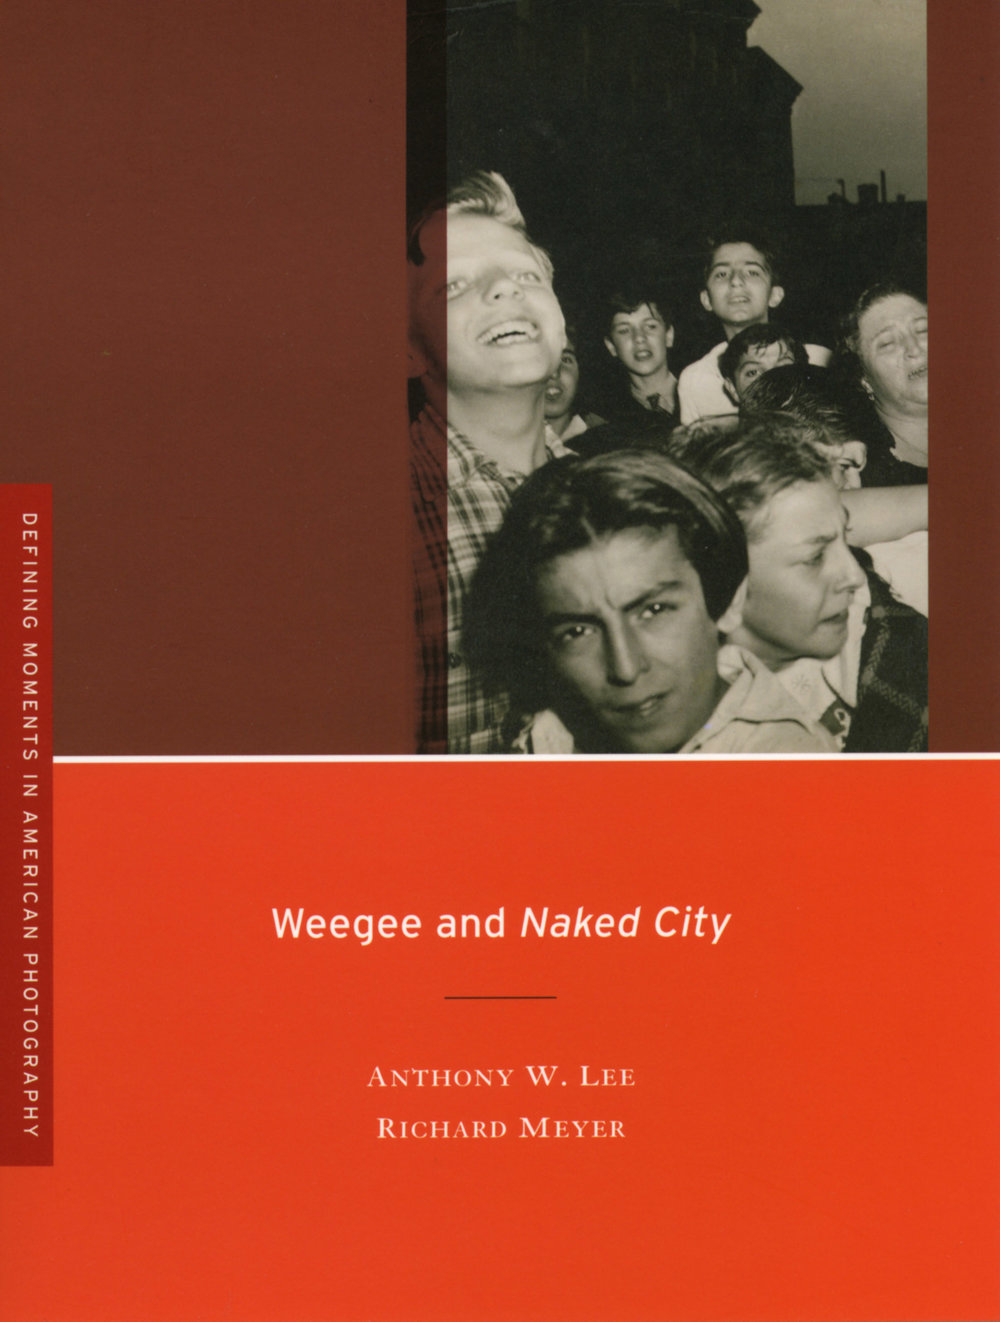 DMAP_weegee-and-naked-city.jpg